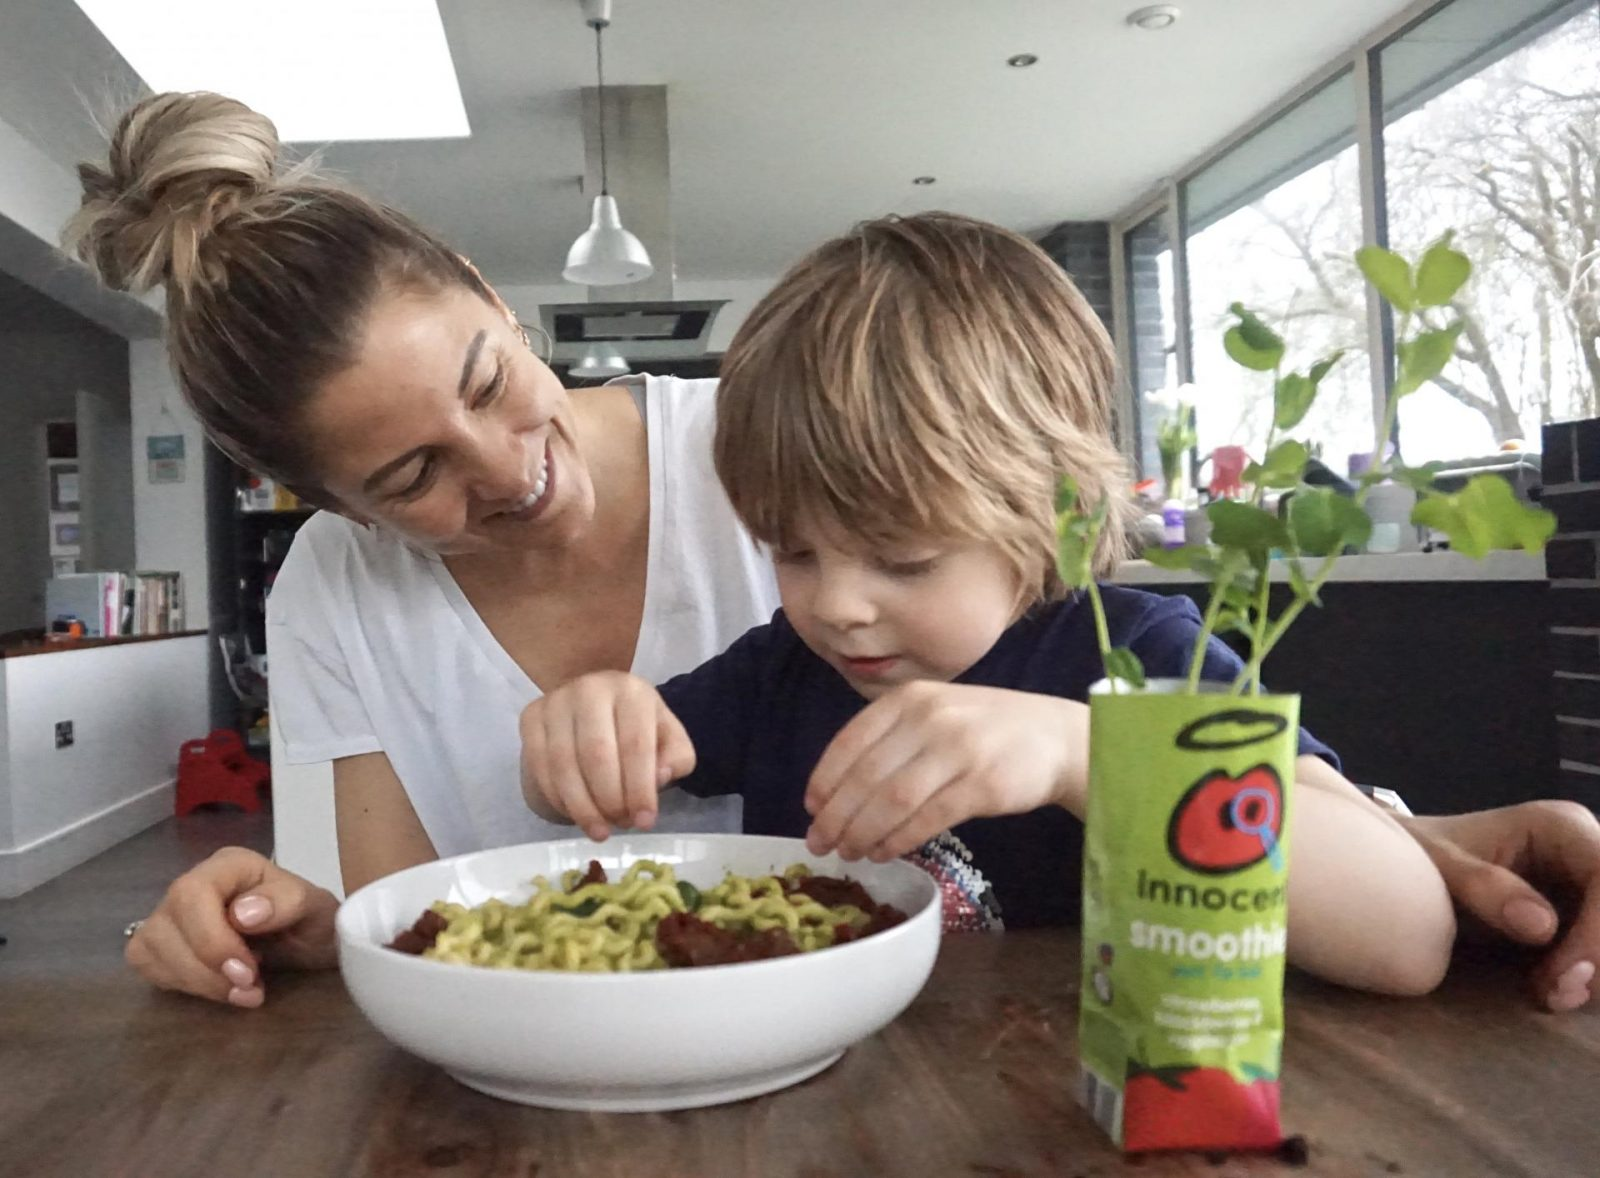 innocent drinks Leanmeanmomma pea pesto big grow